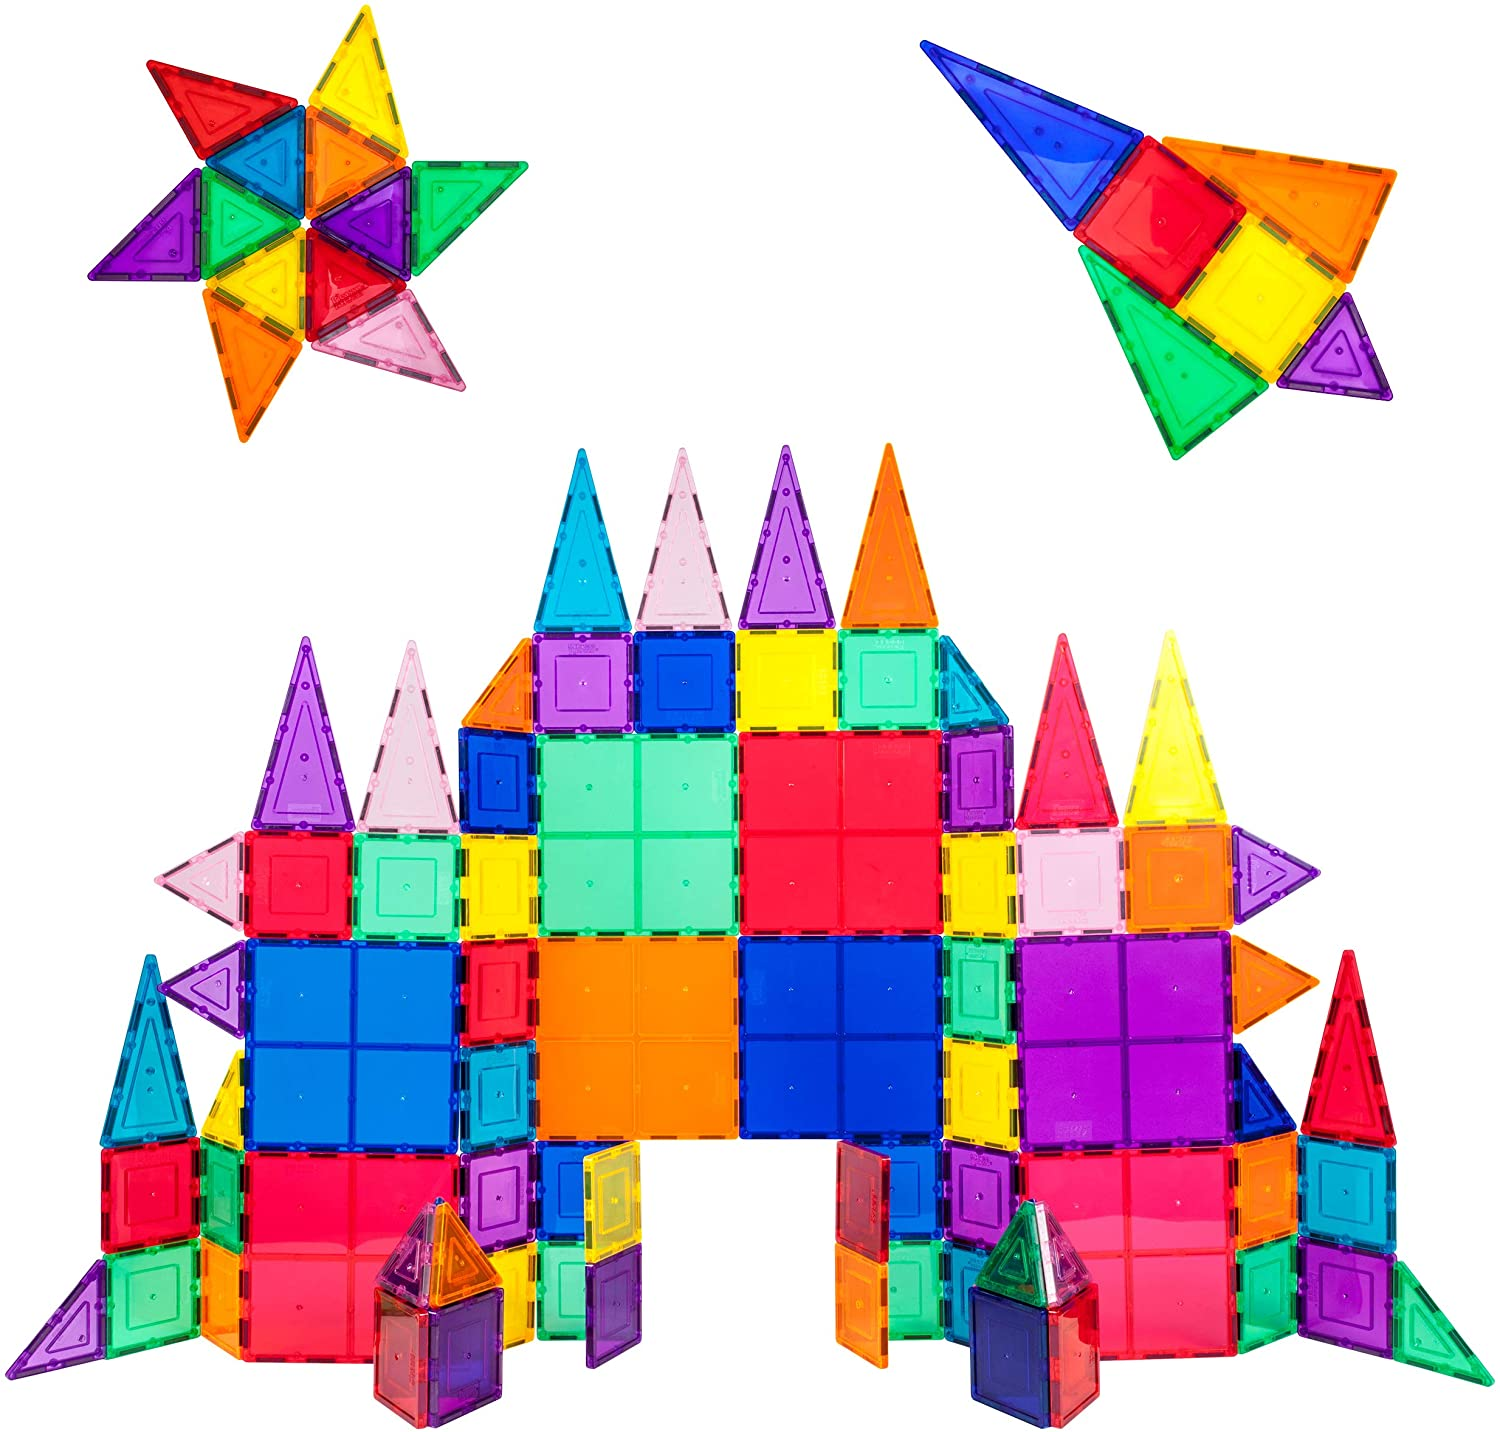 Review of PicassoTiles 100 Piece Set - Magnetic 3D Building Blocks Construction Playboards